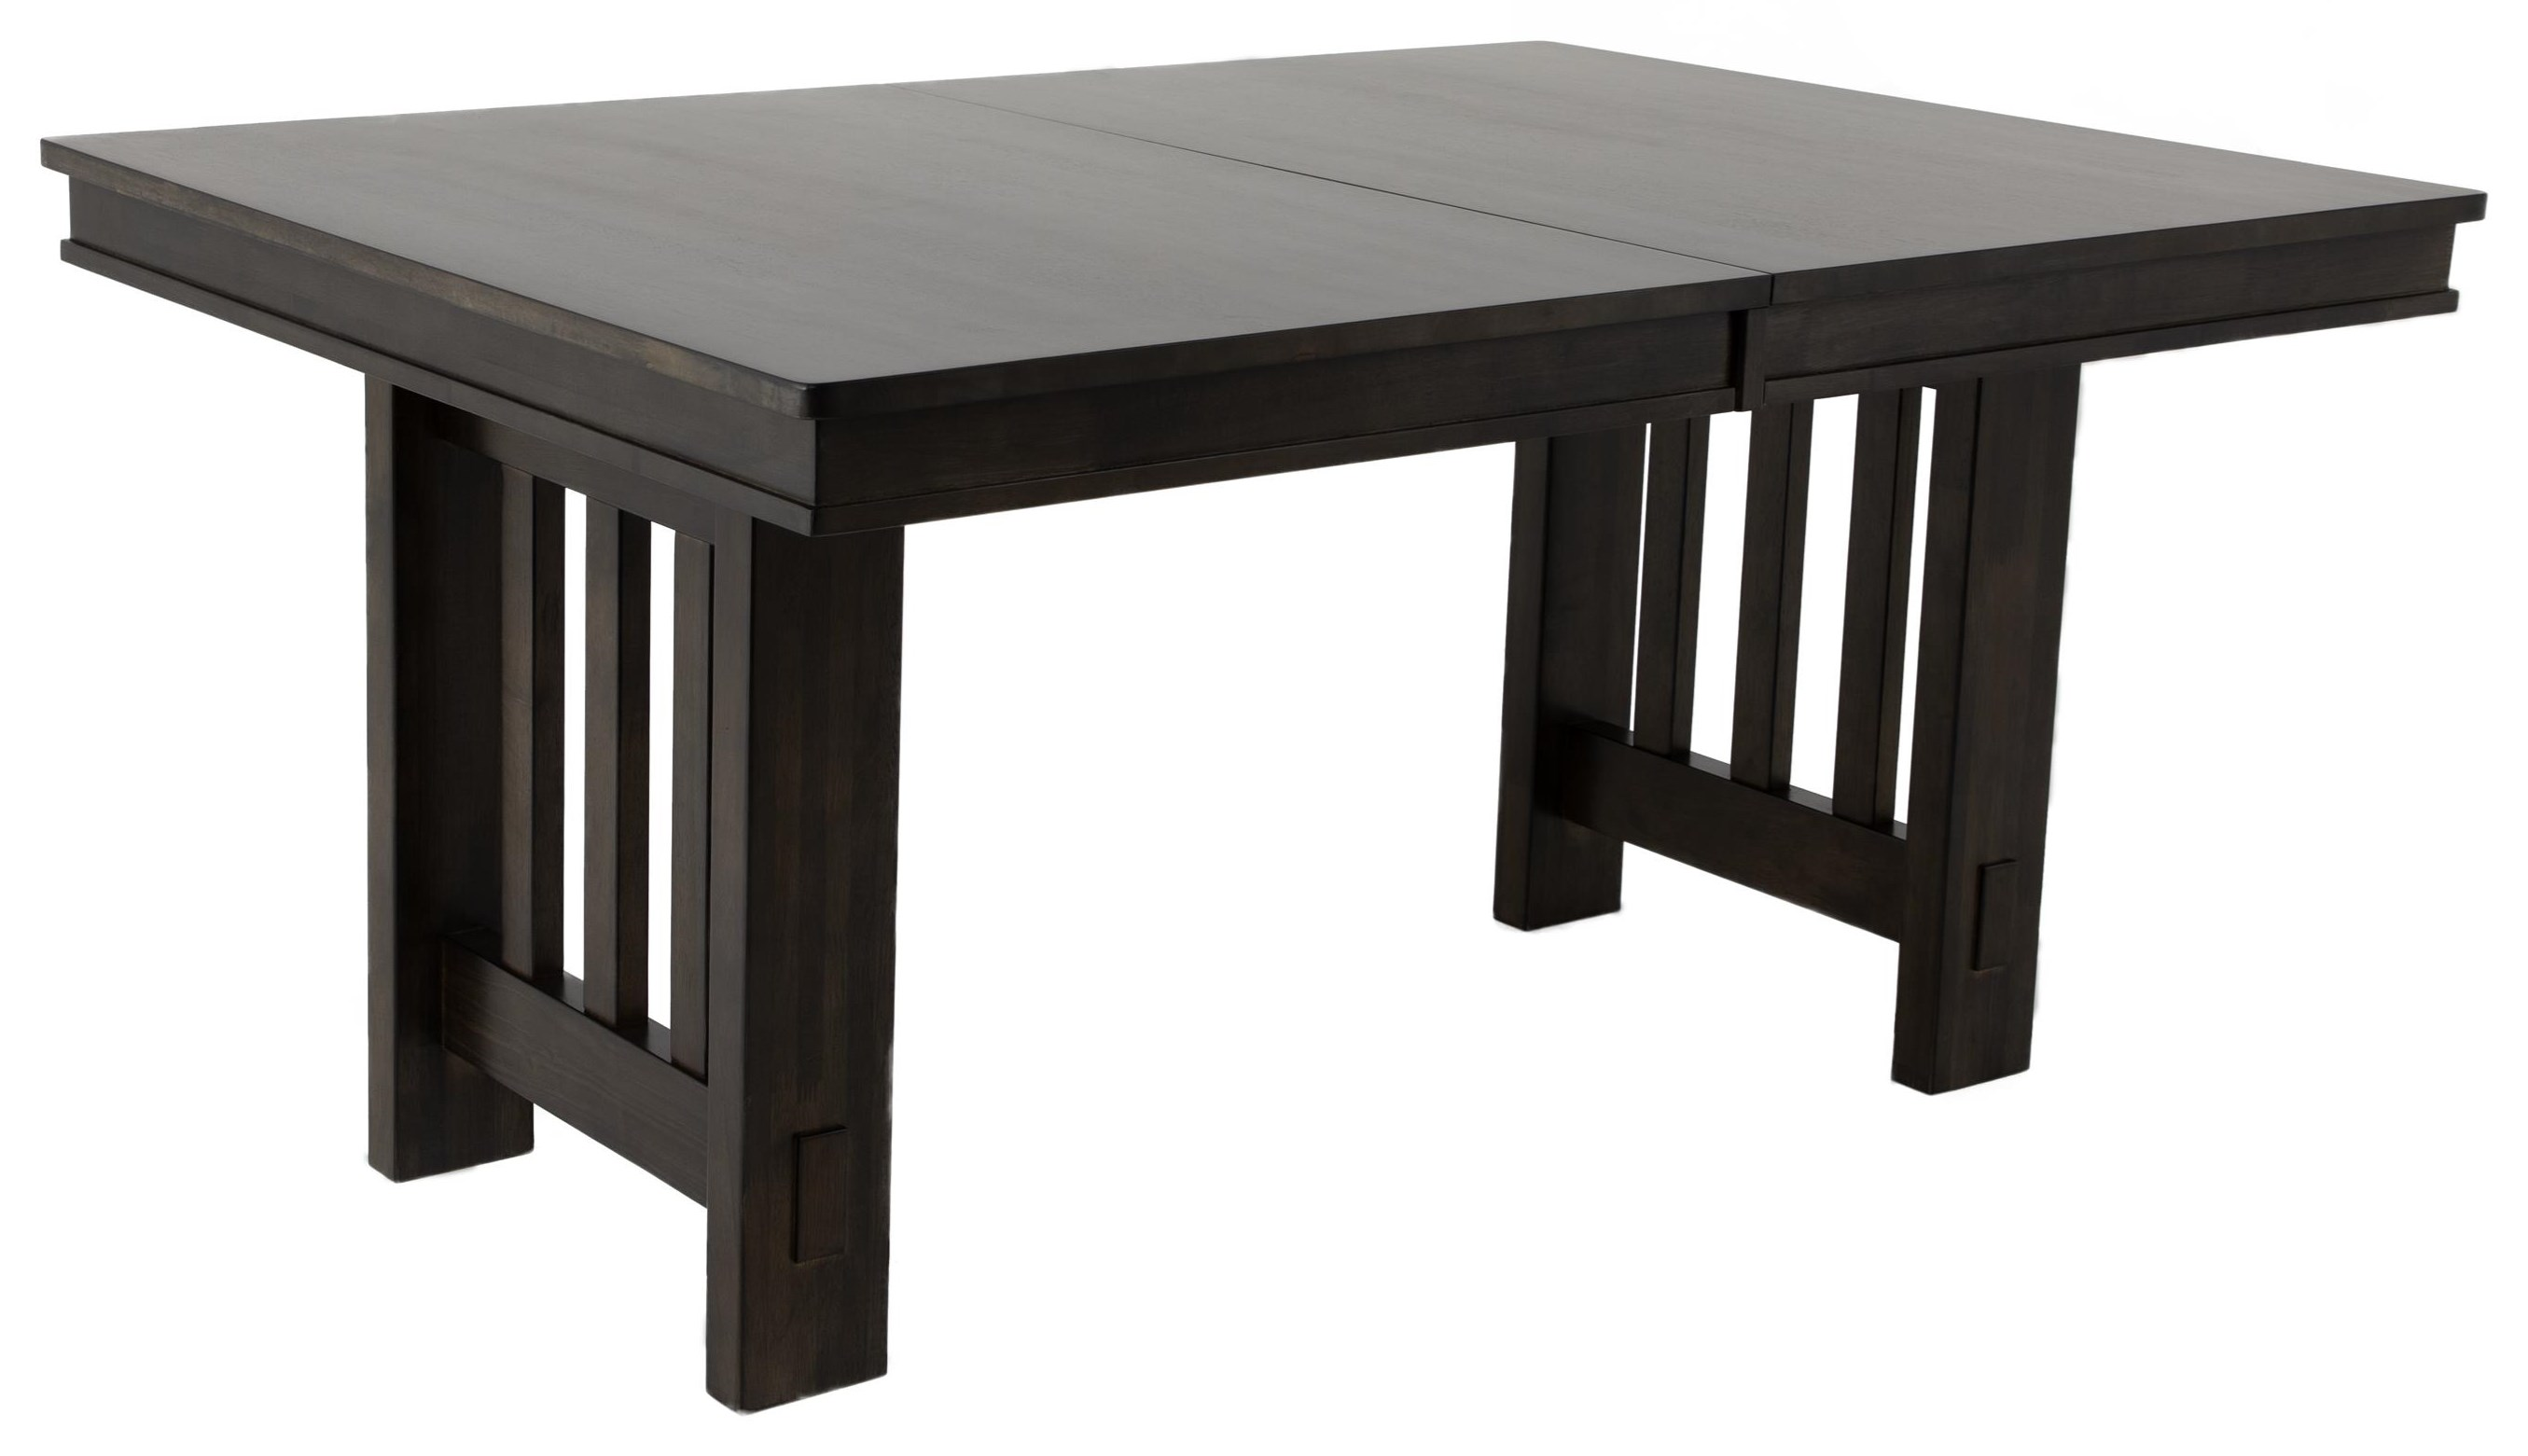 Elston Elston Dining table by A-A at Walker's Furniture